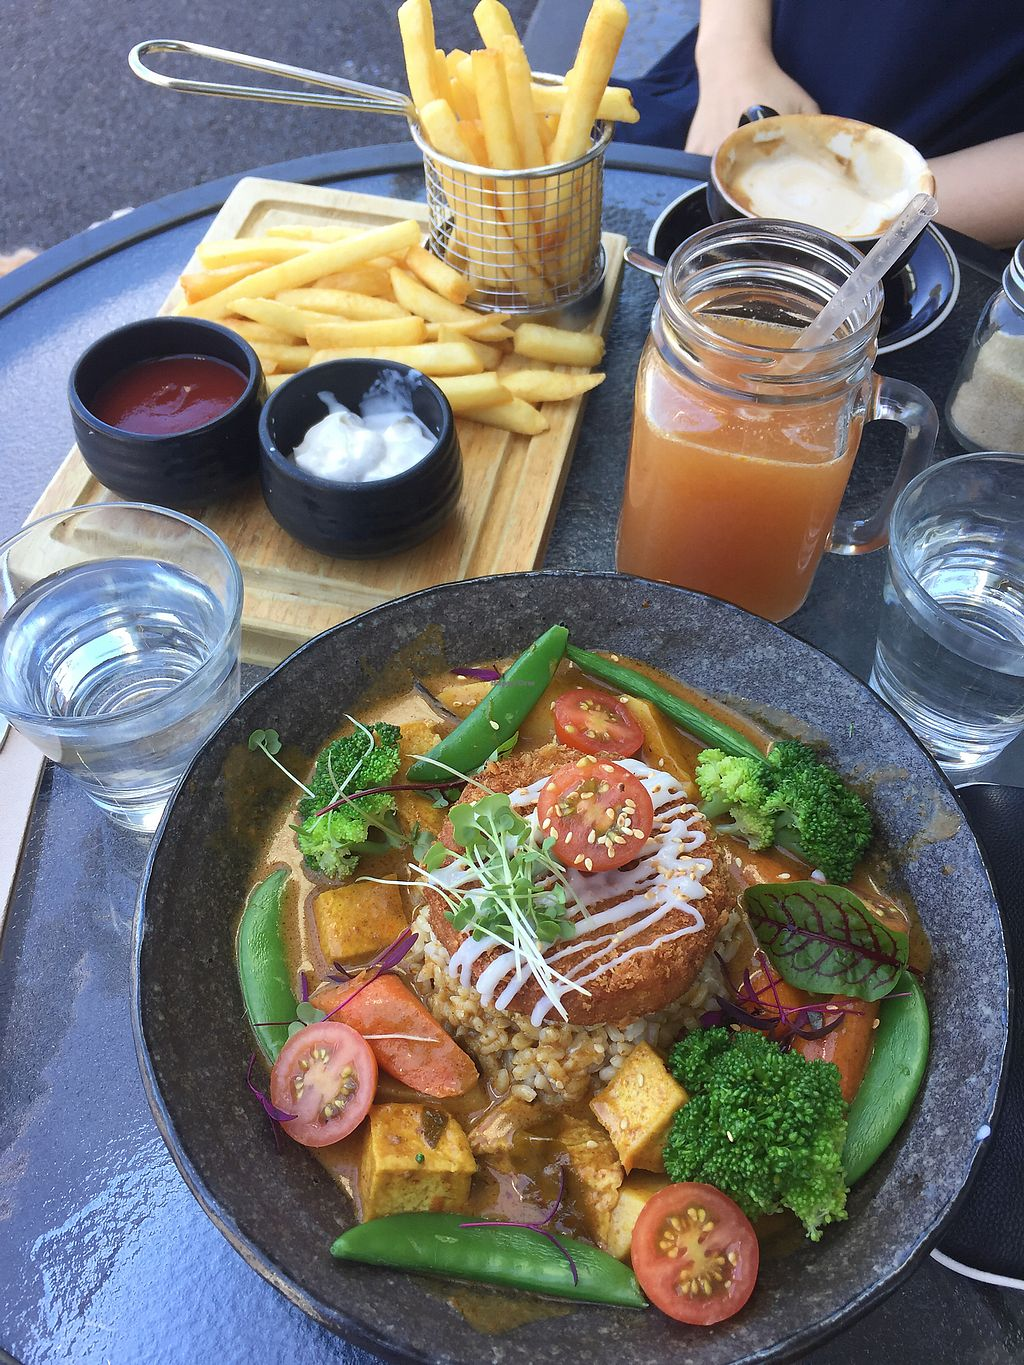 """Photo of V Series  by <a href=""""/members/profile/jessbaik"""">jessbaik</a> <br/>Vegan curry don, Vitamin C juice, potato fries with vegan sour cream <br/> December 31, 2017  - <a href='/contact/abuse/image/64133/341165'>Report</a>"""